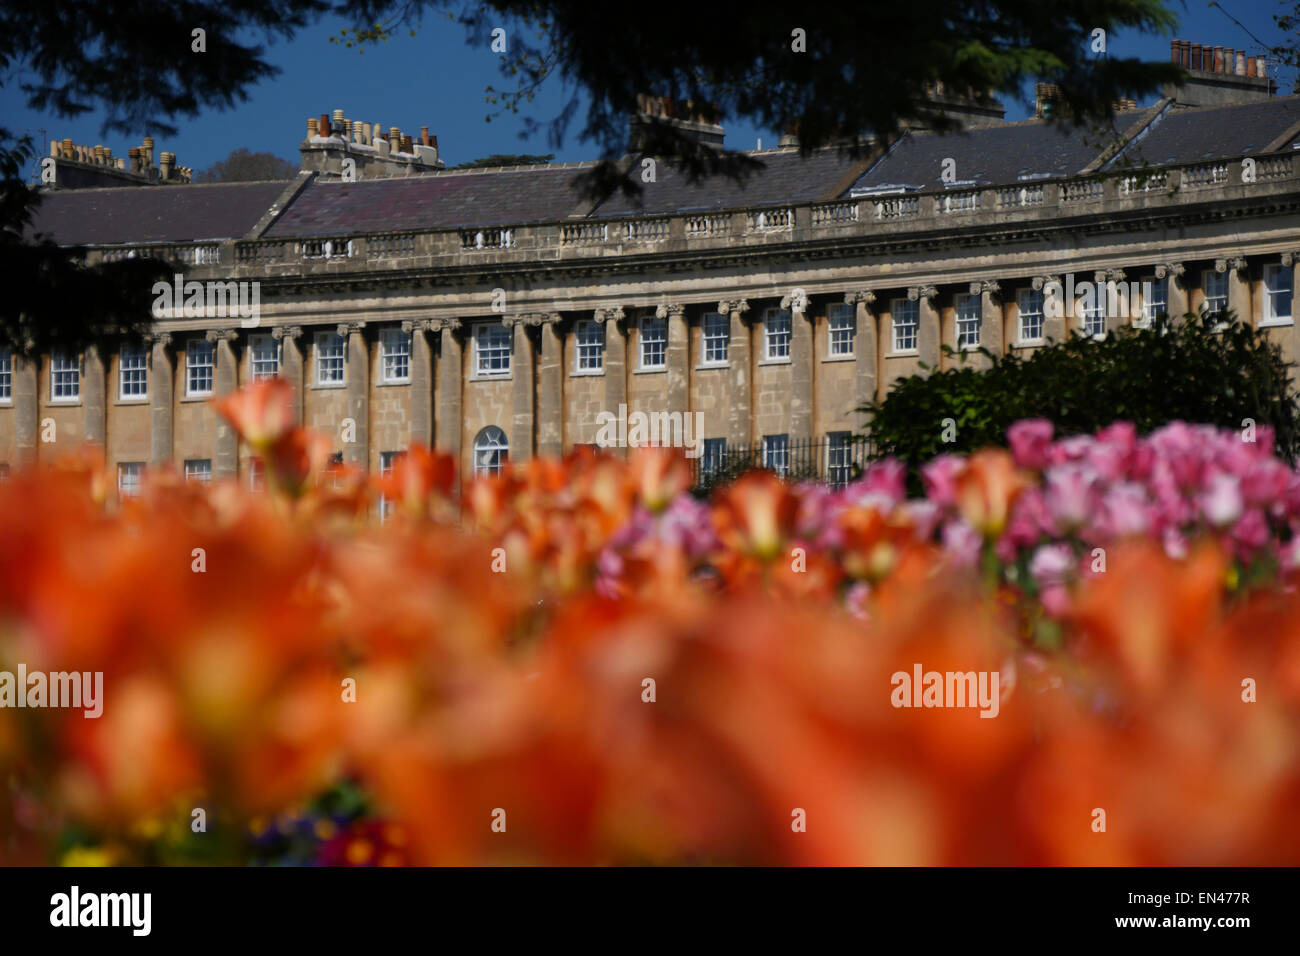 Royal Crescent, Bath, England, with spring flowers in foreground Stock Photo